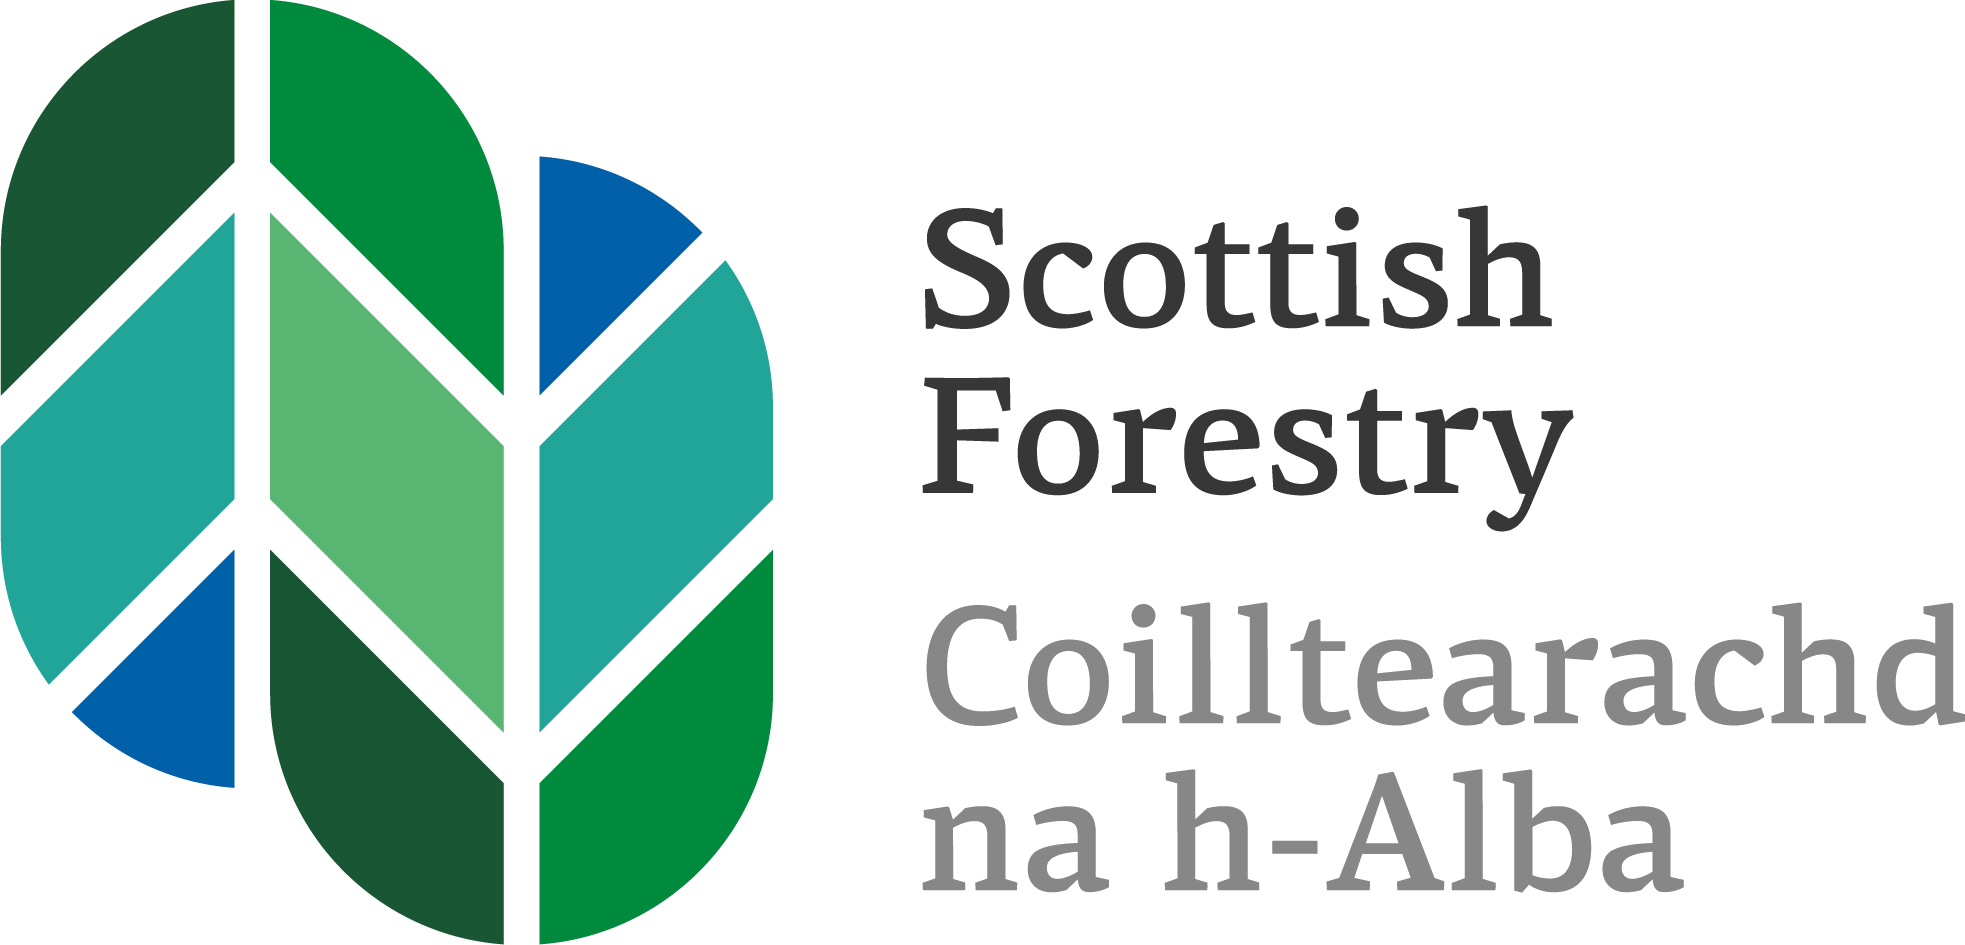 Bonnie Maggio Education Programme Manager Scottish Forestry - Outdoor Learning Directory